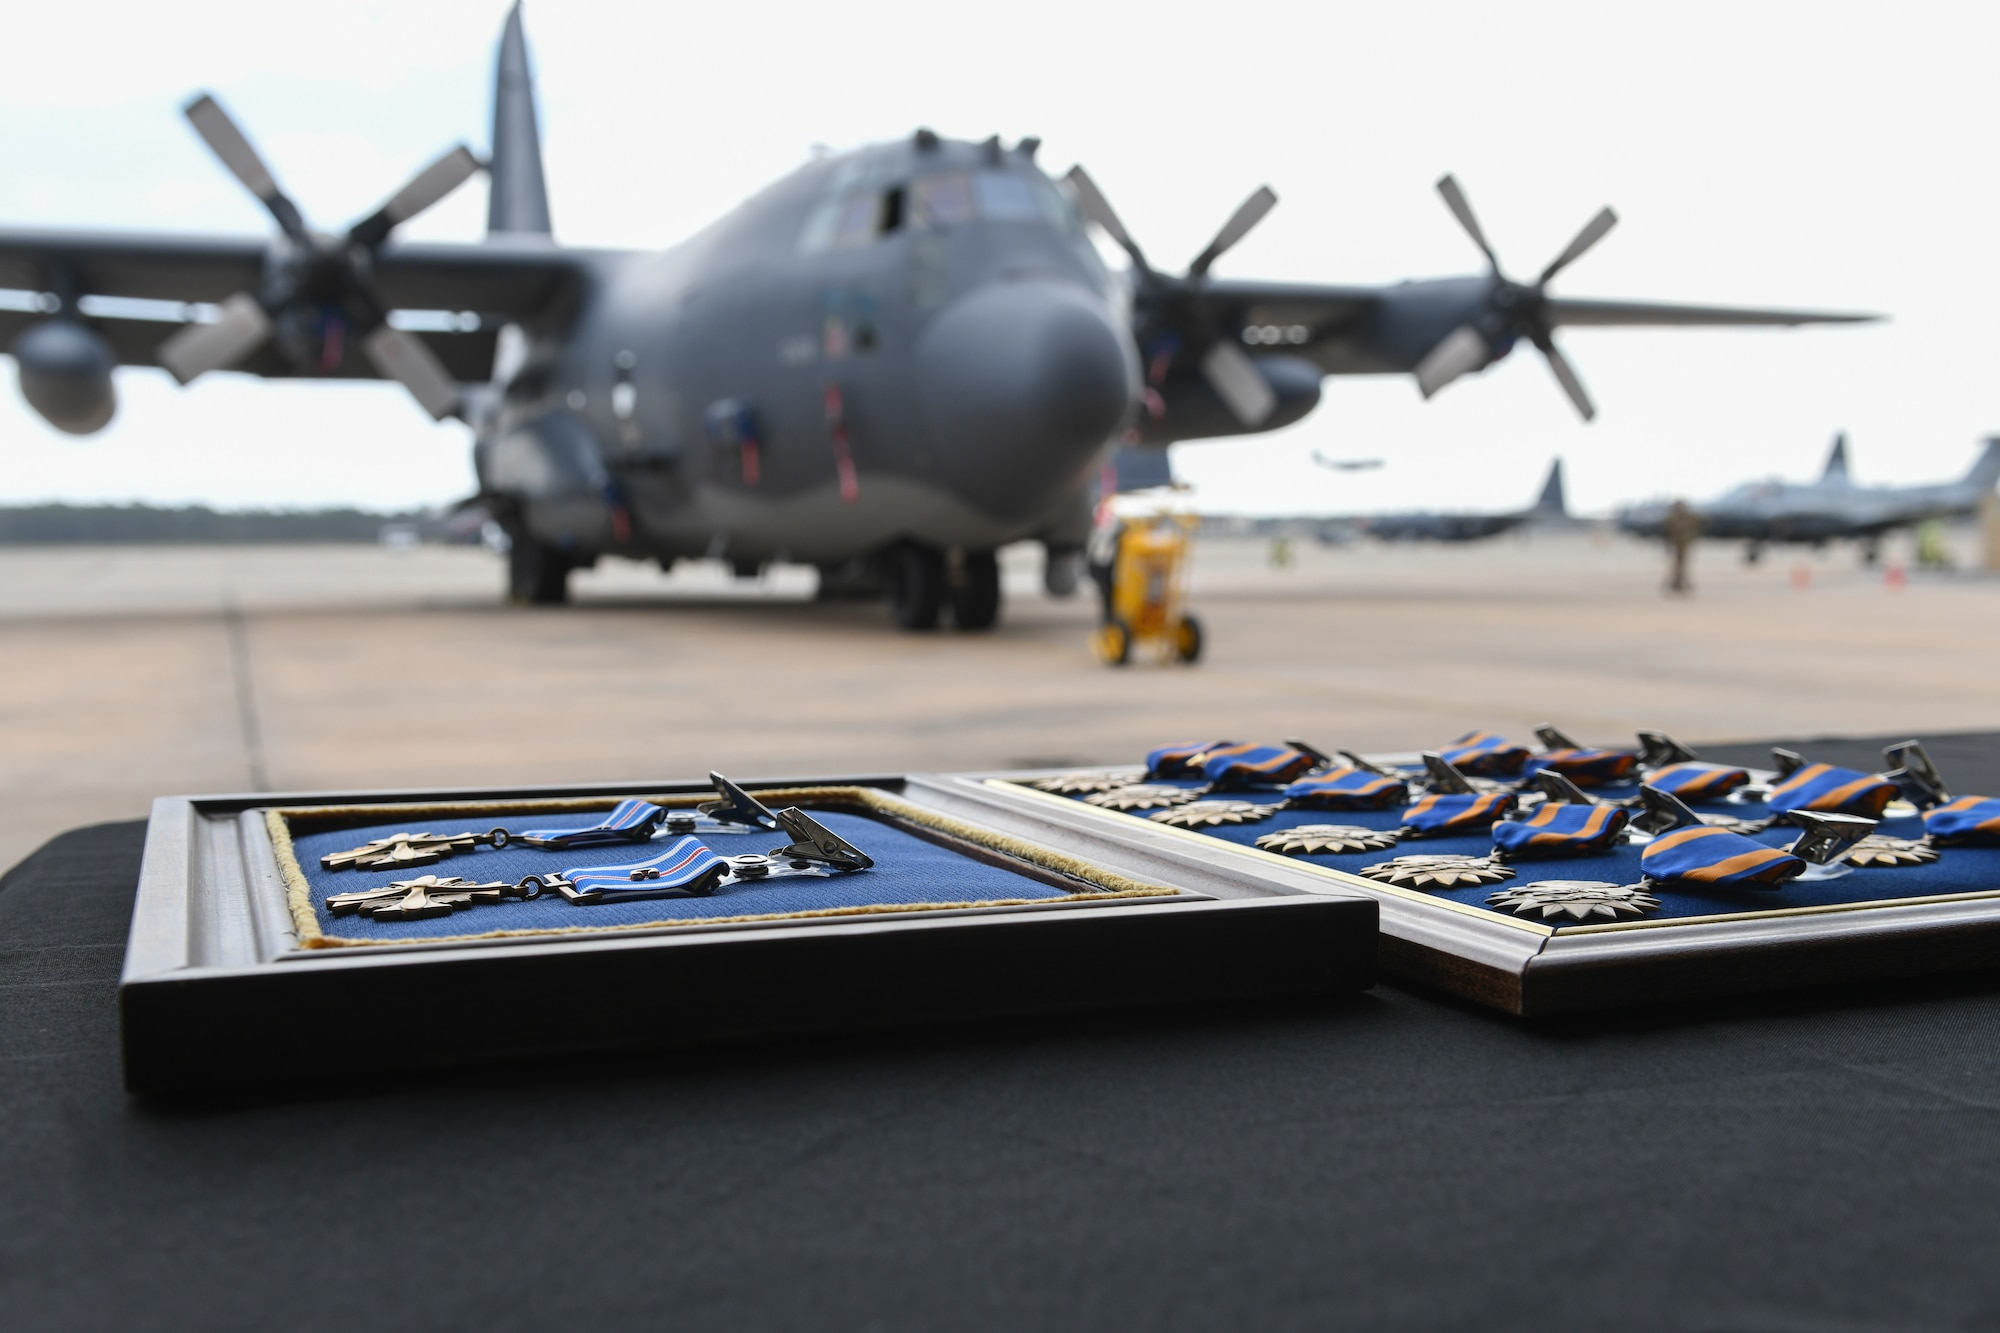 """Two Distinguished Flying Cross medals and 12 Air Medals lay on a table before a presentation ceremony at Hurlburt Field, Fla., March 2, 2020. During the ceremony, 14 air commandos with the 4th Special Operations Squadron were presented two DFCs and 12 Air Medals in recognition of actions taken near Nangarhar Province, Afghanistan, April 3-4, 2019, with the AC-130U """"Spooky"""" Gunship. During a nine-hour period, the crew's exemplary performance and battlefield coordination enabled the recovery of 15 patients following a mass-casualty event. (U.S. Air Force photo by Airman 1st Class Hailey M. Ziegler)"""